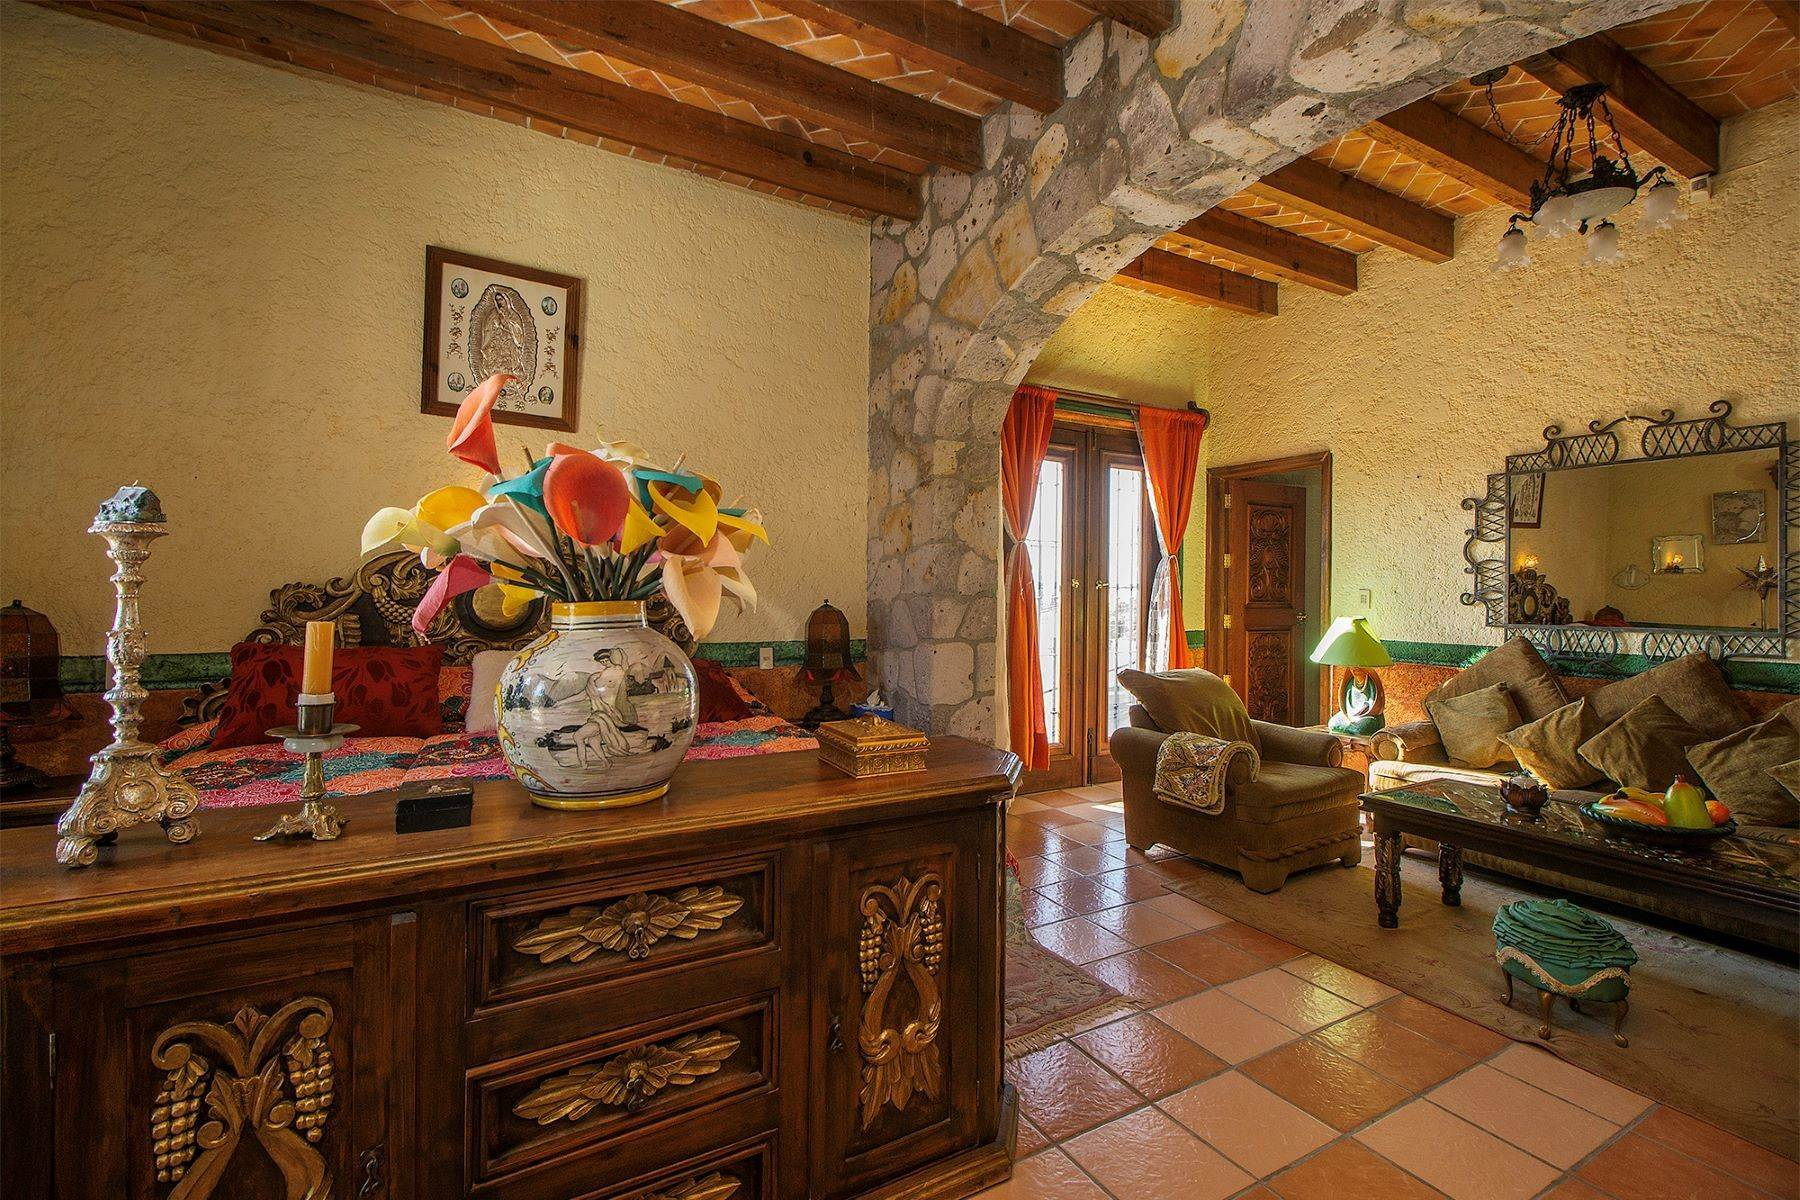 11. Single Family Homes for Sale at CASA COLONIAL CASA MEXICANA, Col. Independencia San Miguel De Allende, Guanajuato 37732 Mexico